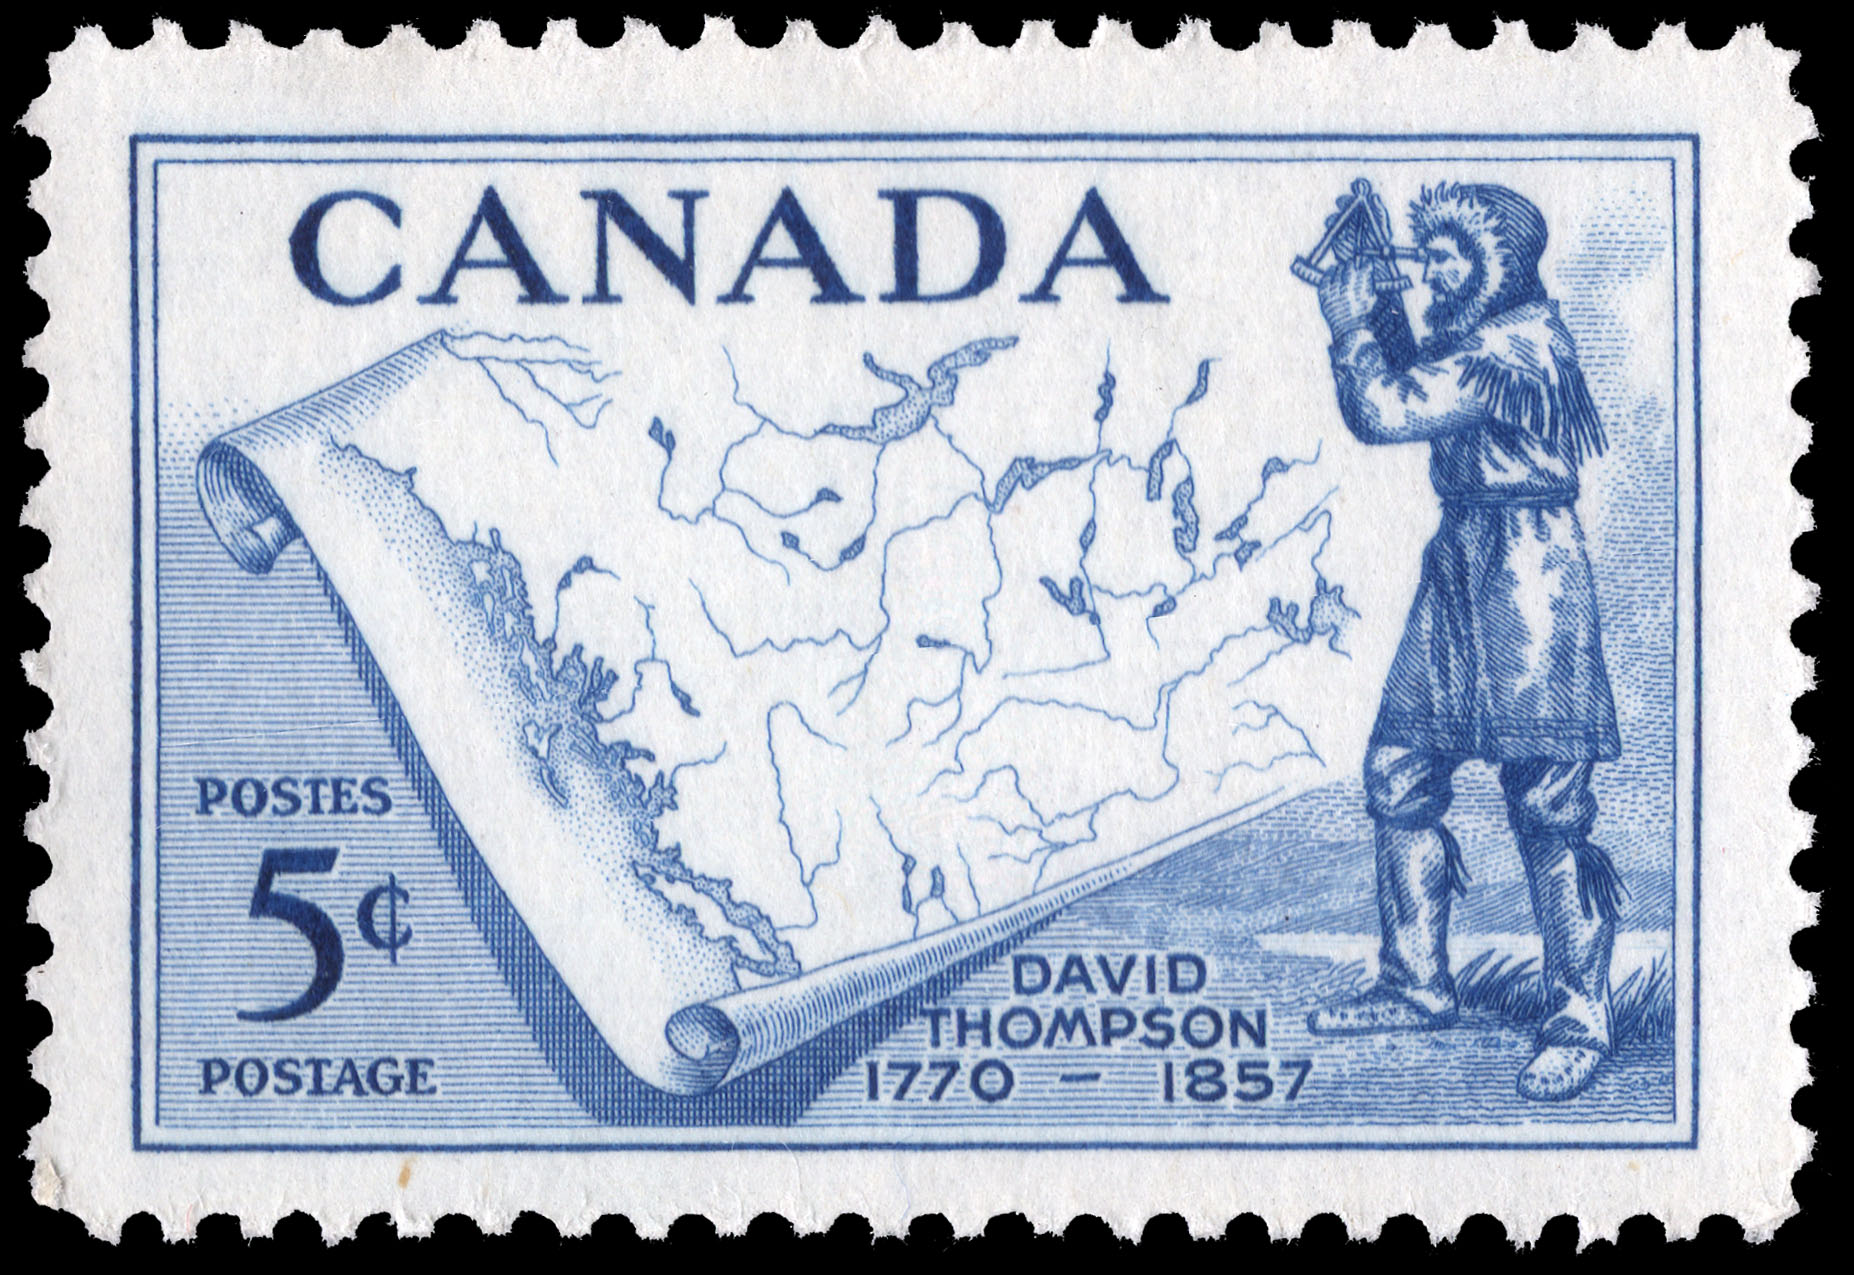 David Thompson, 1770-1857 Canada Postage Stamp